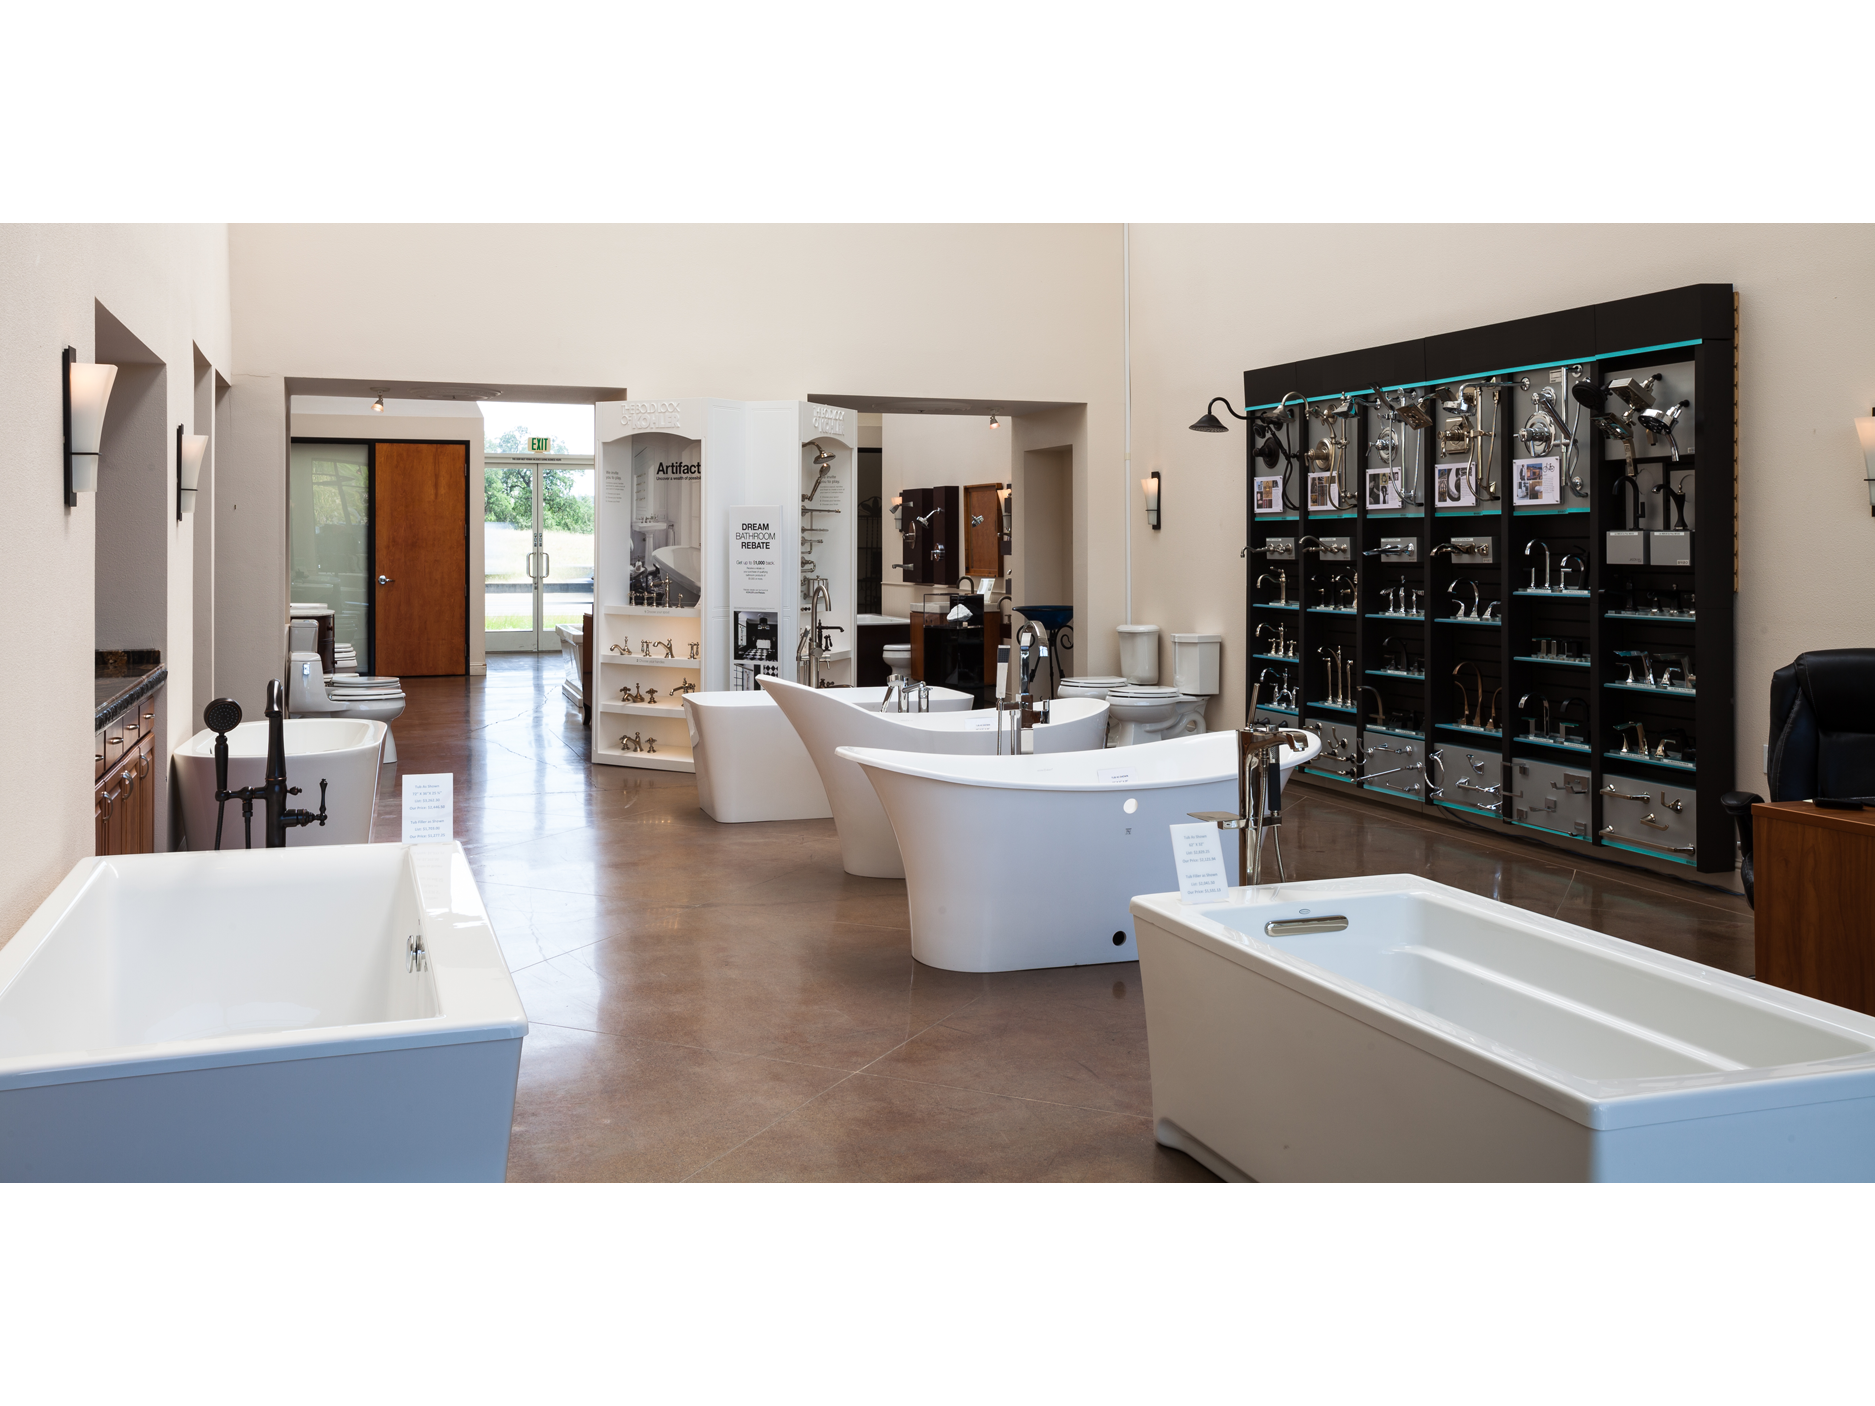 KOHLER Bathroom & Kitchen Products At The Plumbery In